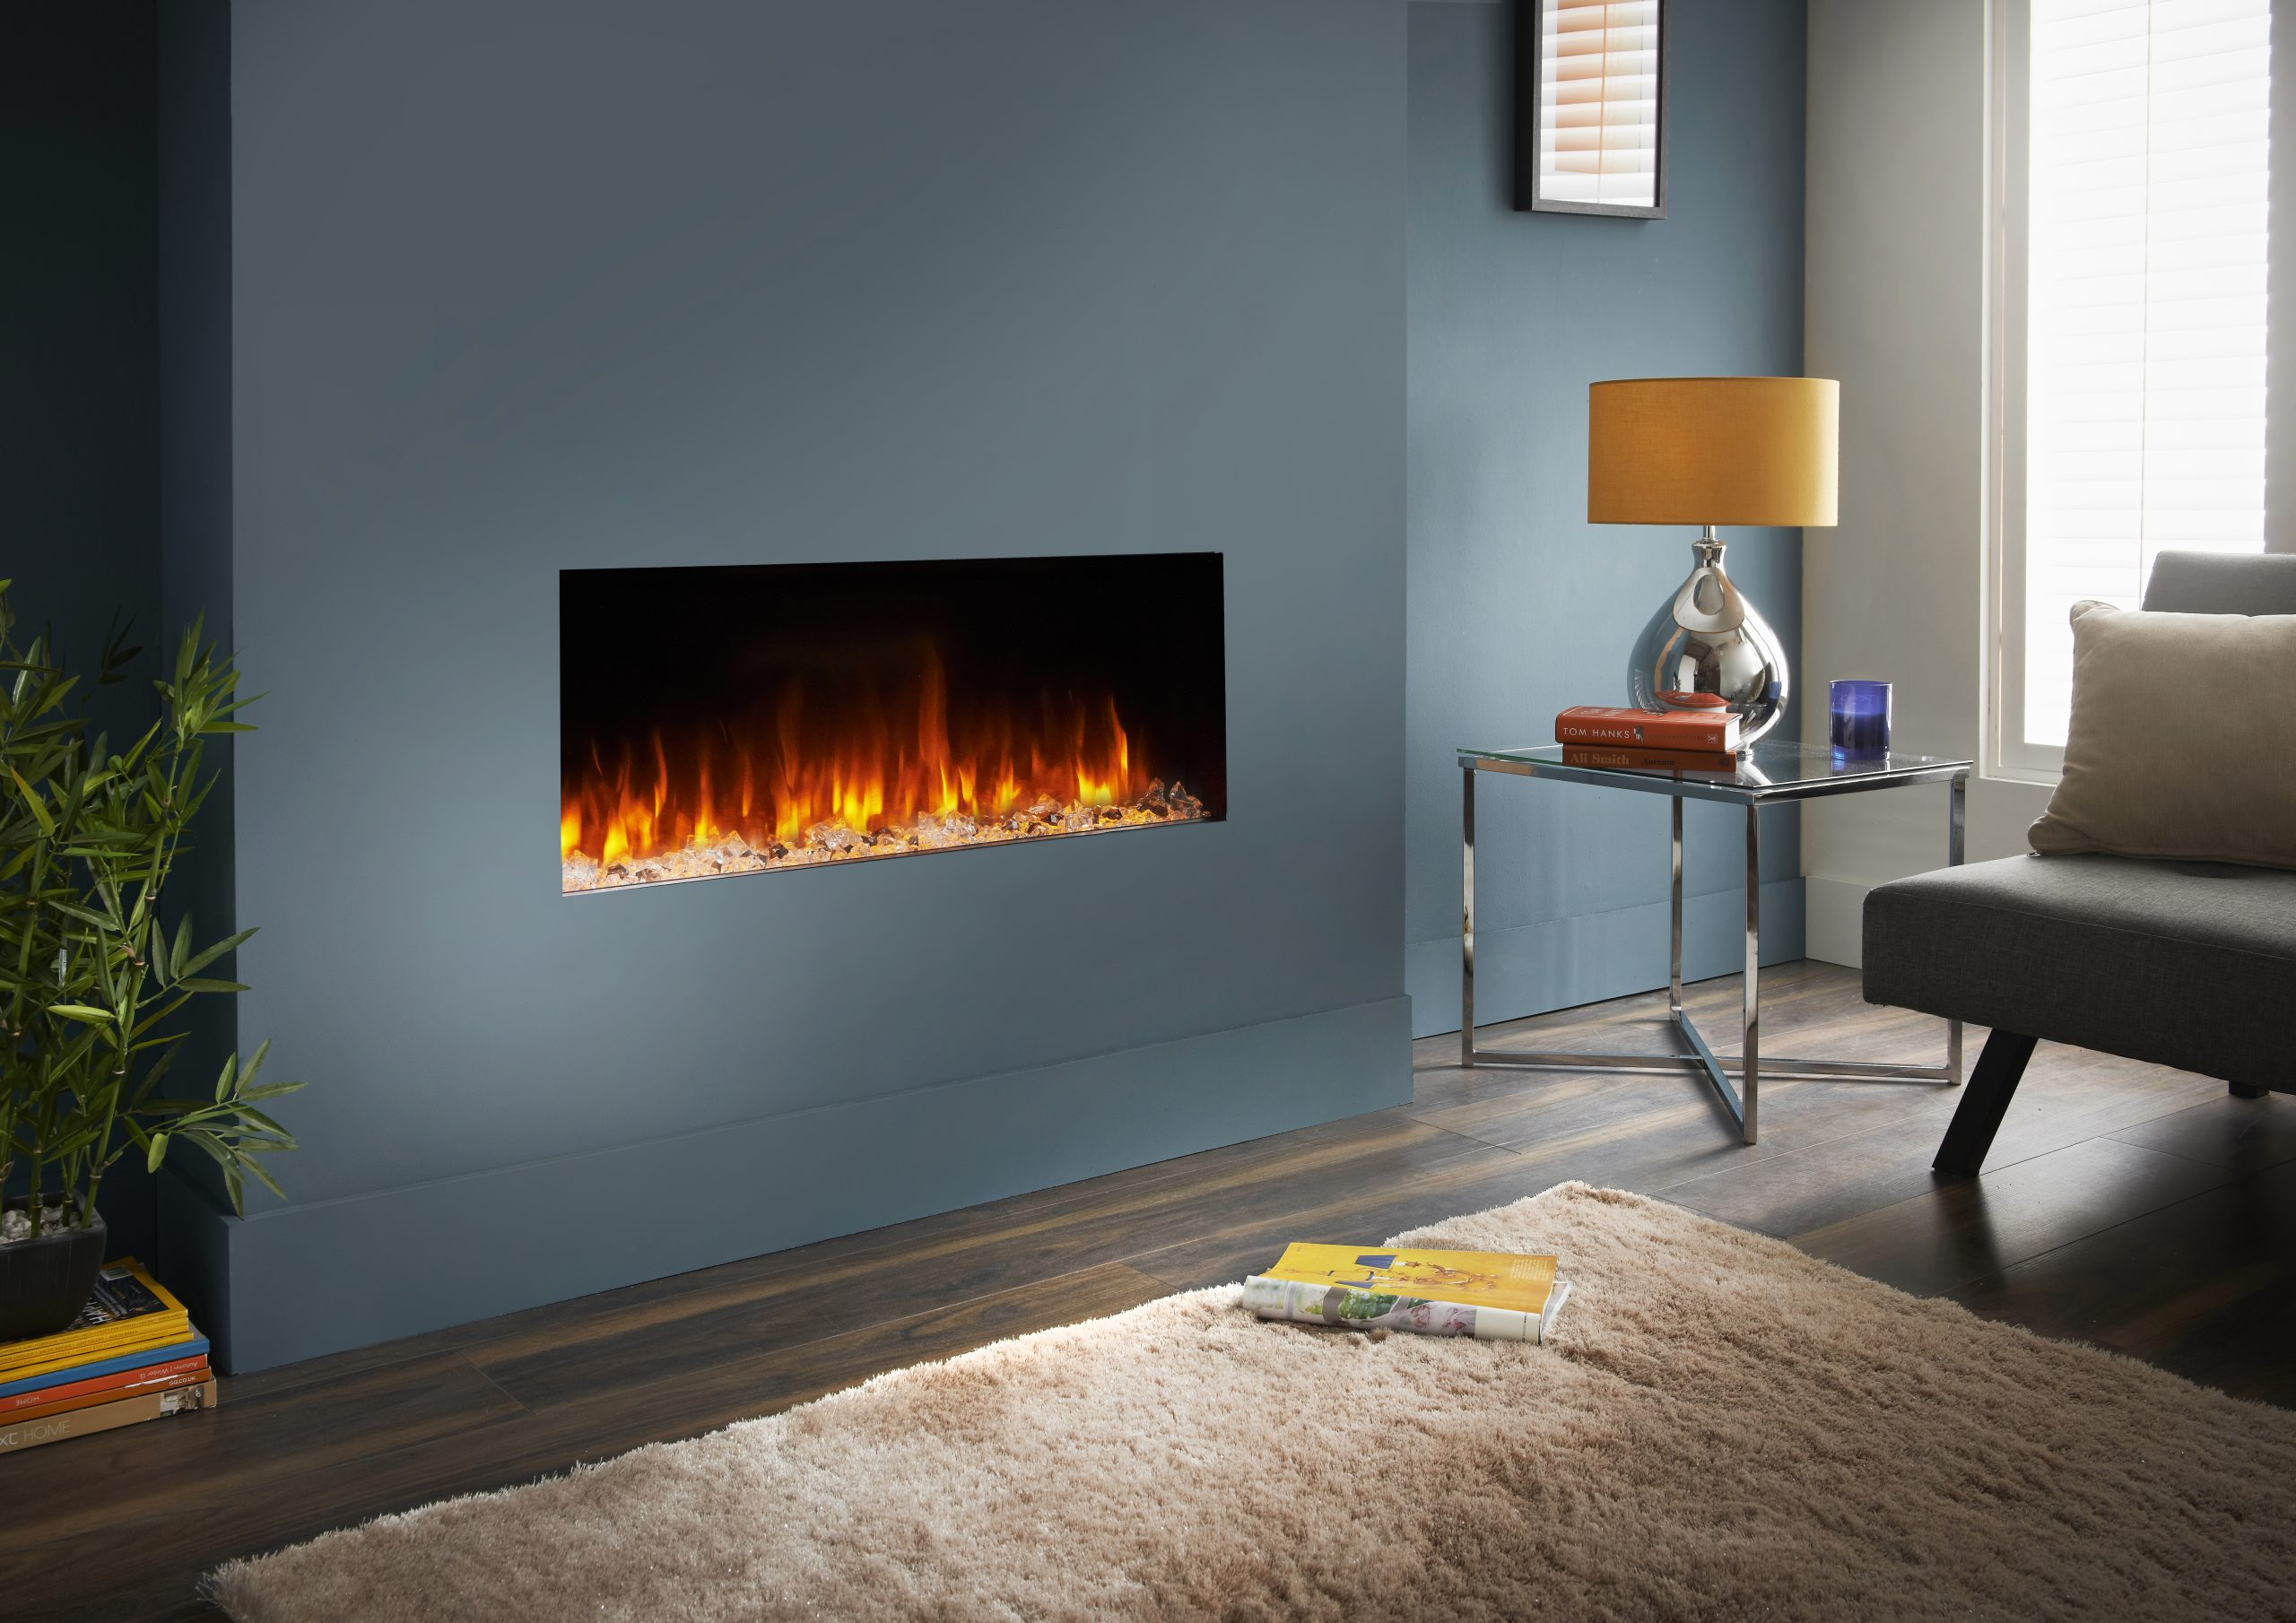 Bespoke 890 Hd Modern Electric Fire Great Customer Service